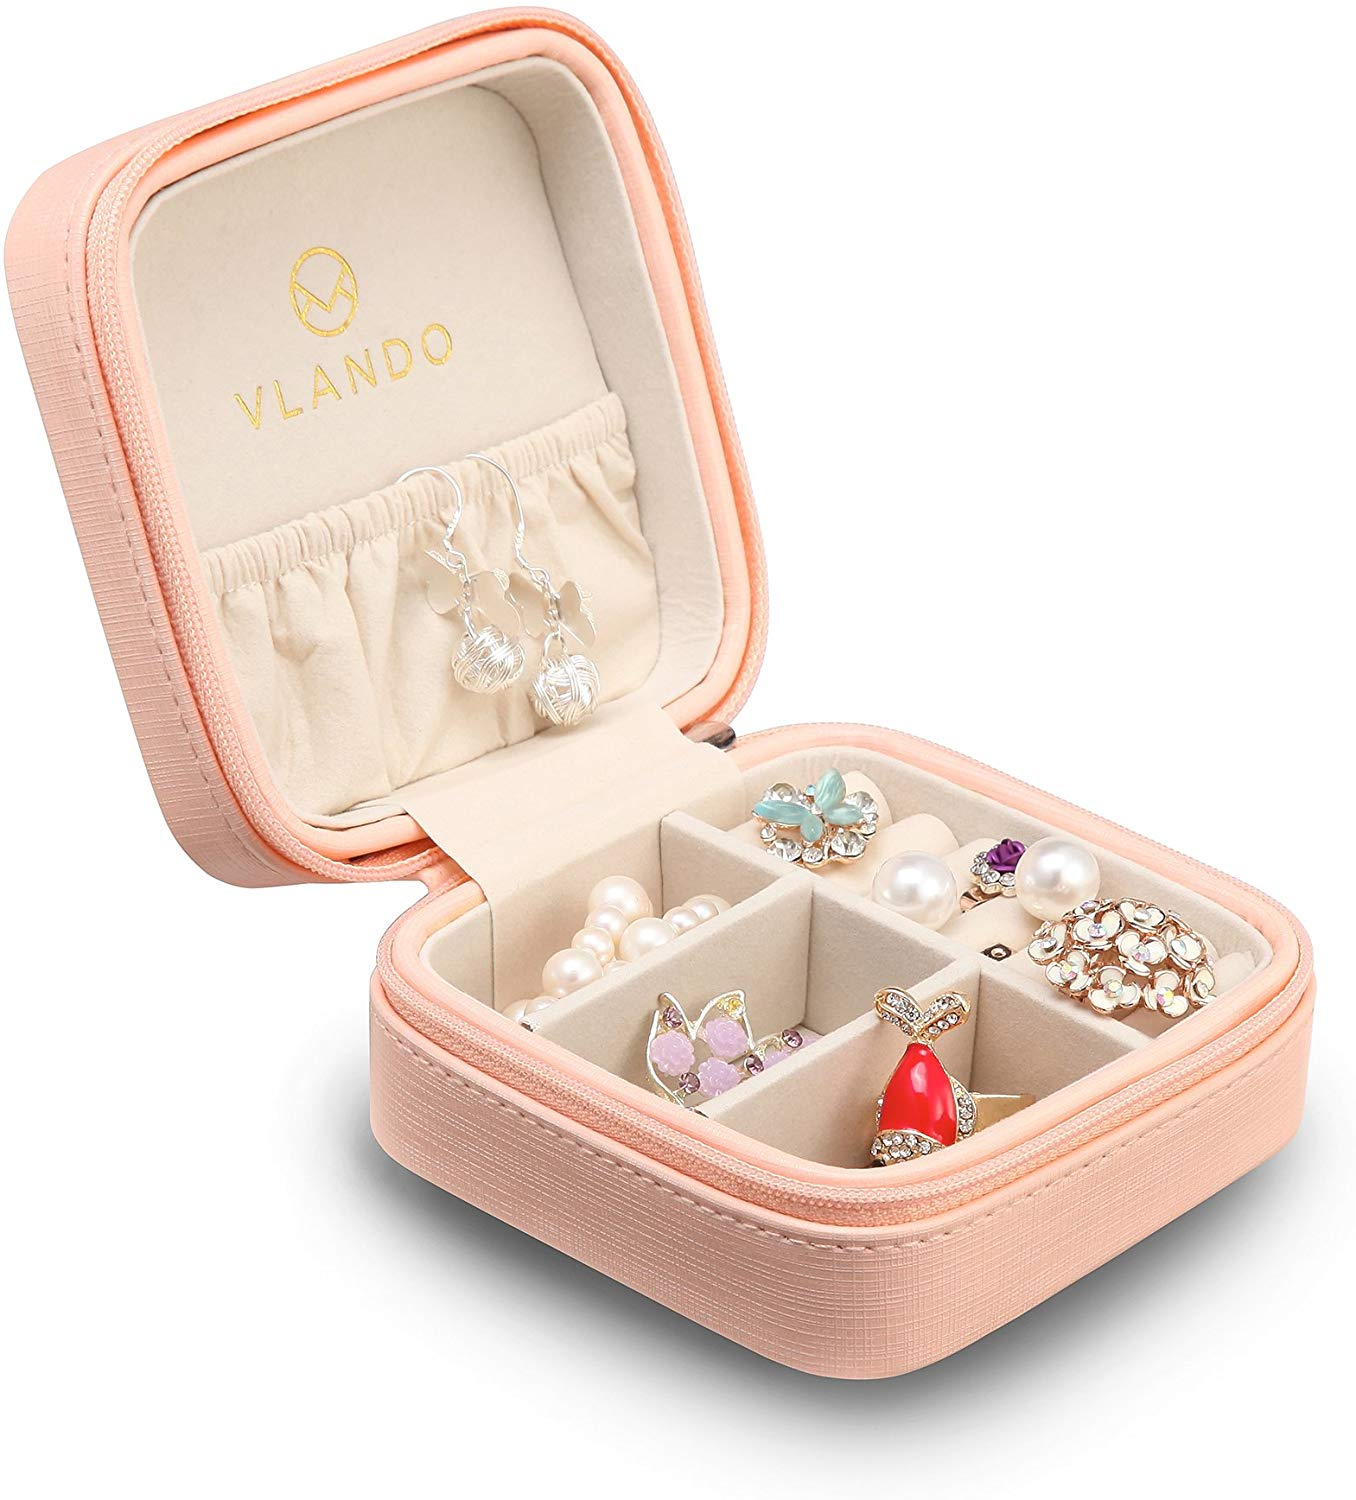 Mini Jewellery Box Organizer